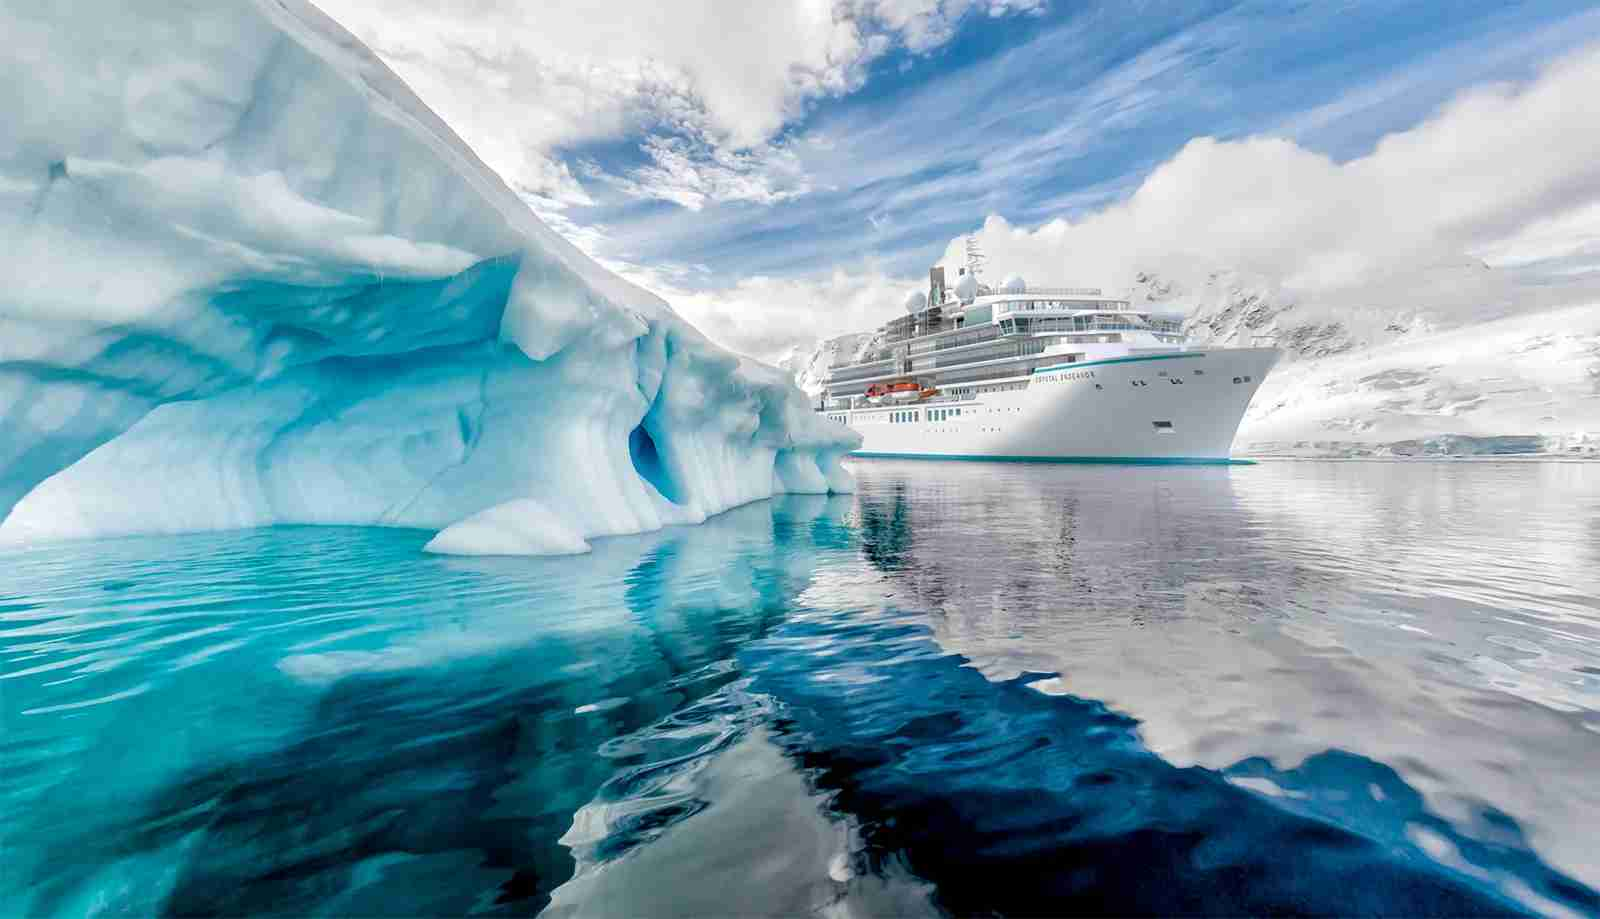 The 200-passenger Crystal Endeavor will sail to Antarctica and other off-the-beaten-path destinations. Image courtesy of Crystal Cruises.